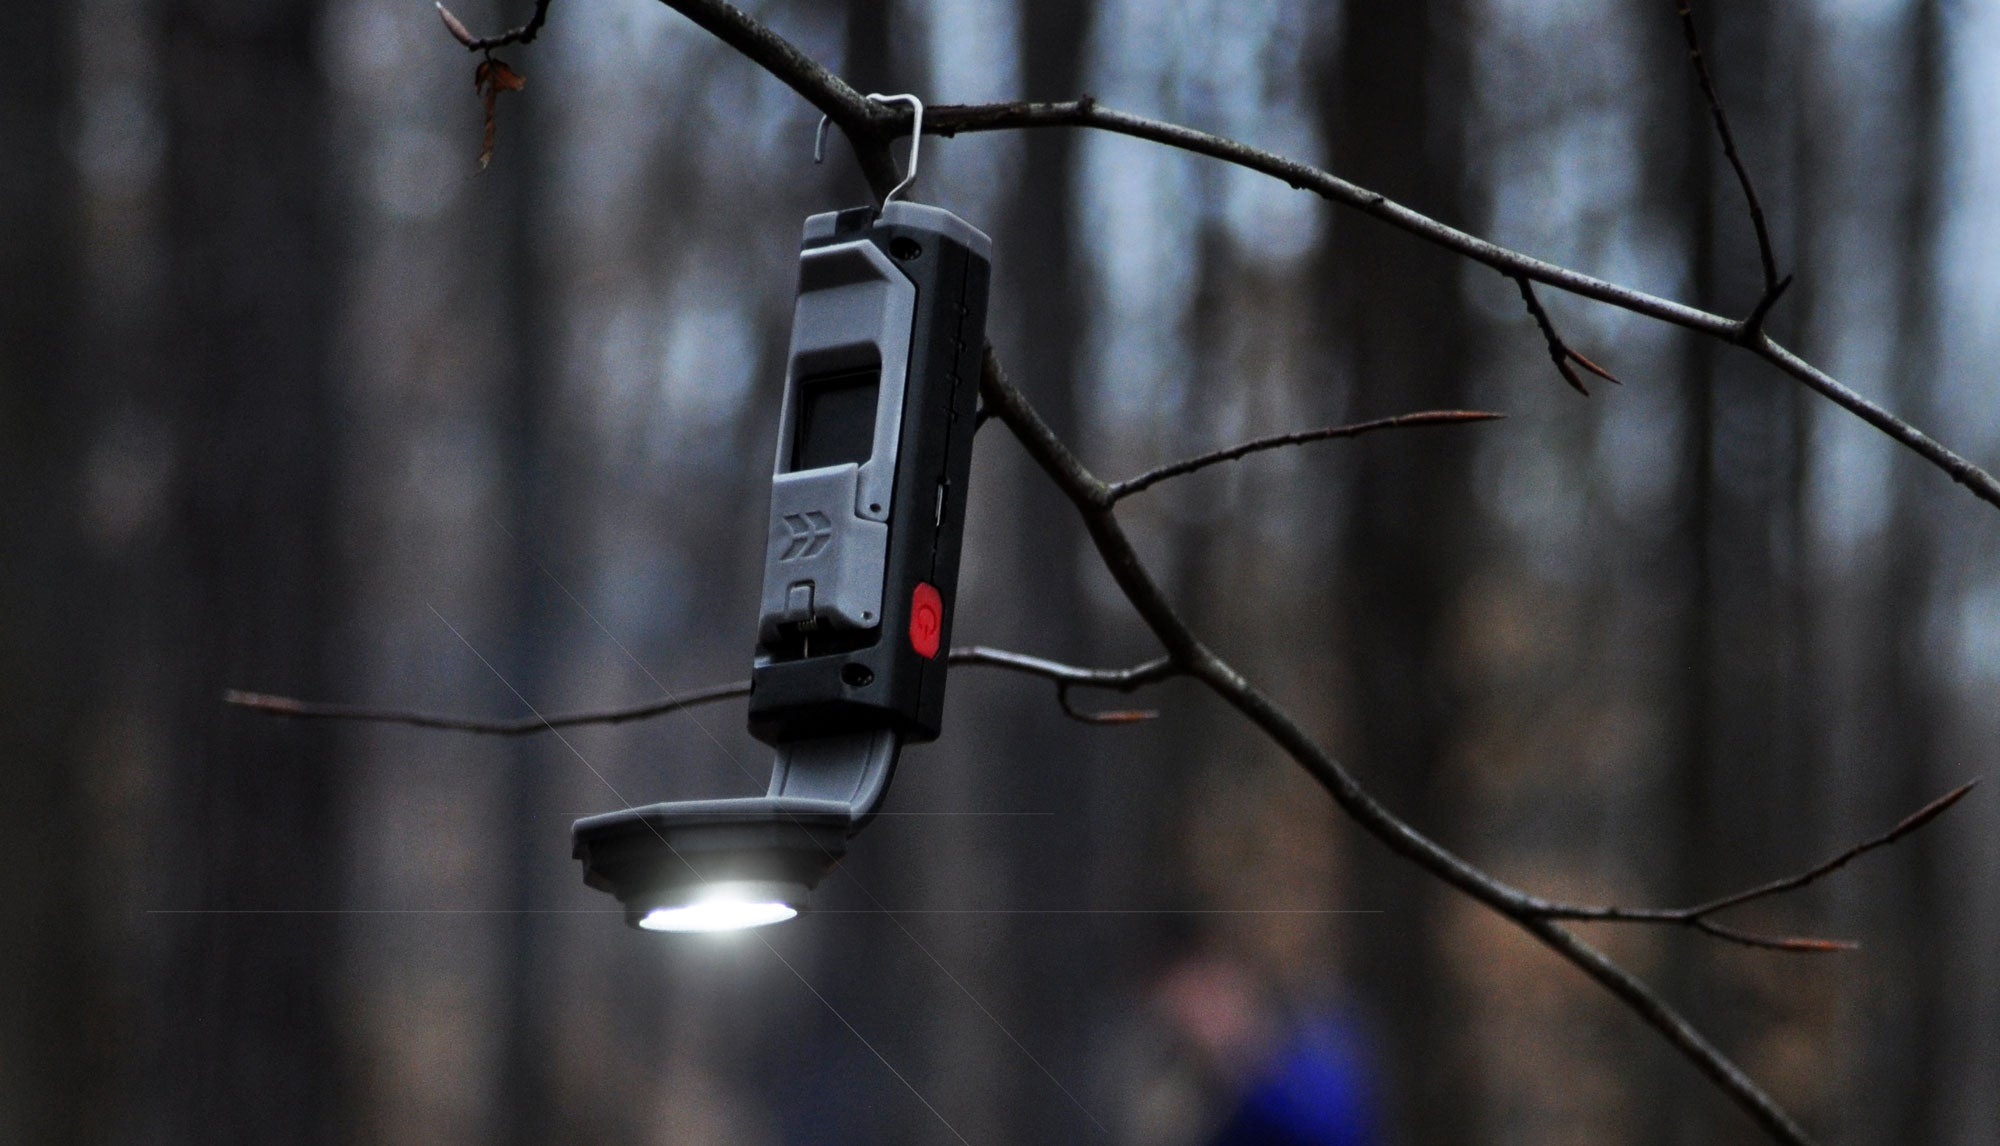 Use the FLEXIT Pocket Light hands-free with hanging hook like on a tree branch | STKR Concepts